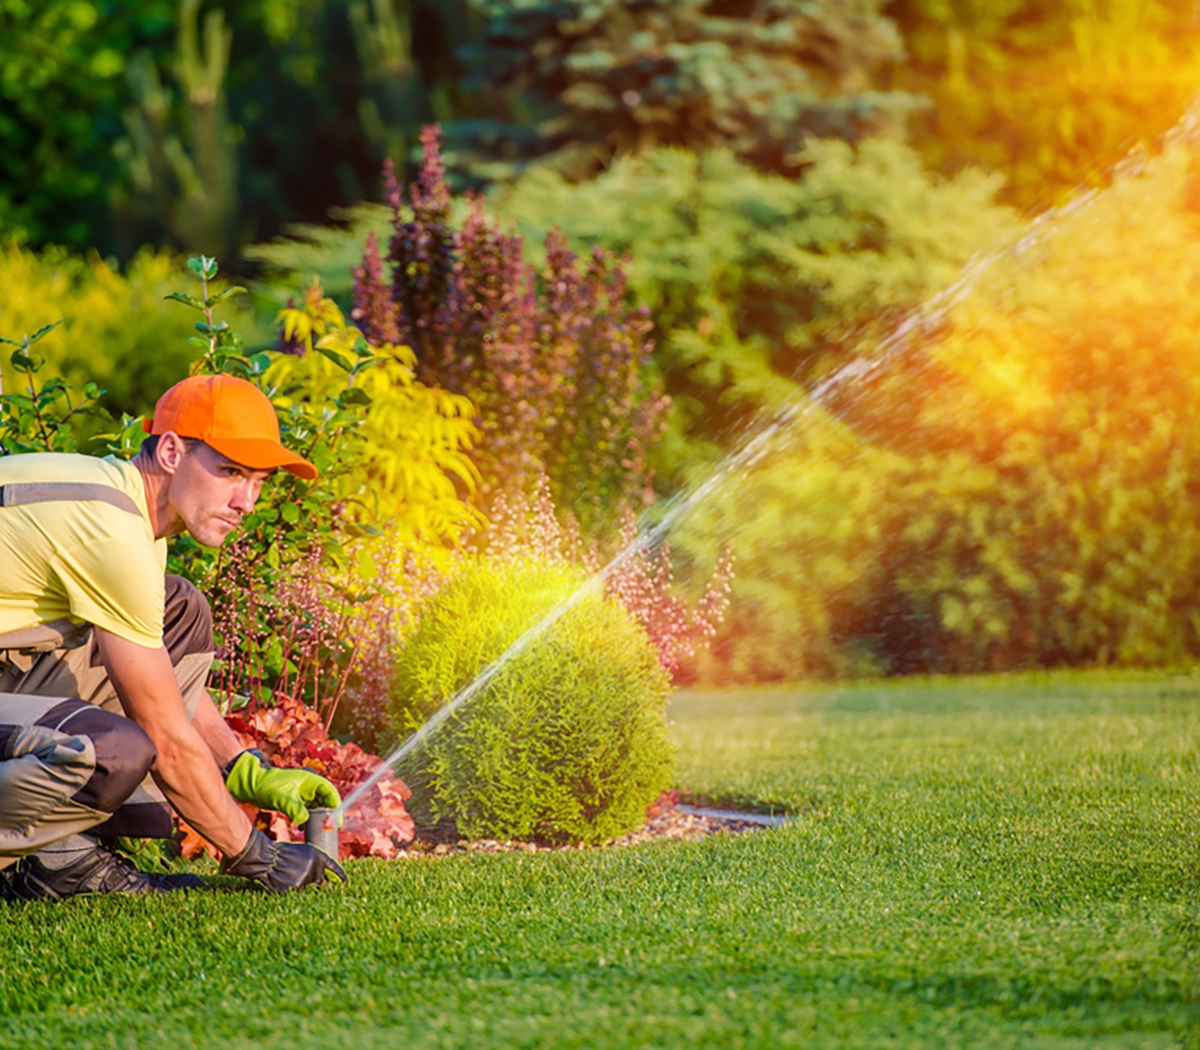 Garden Watering Systems. Garden Technician Testing Watering Sprinkler System in the Residential Garden.